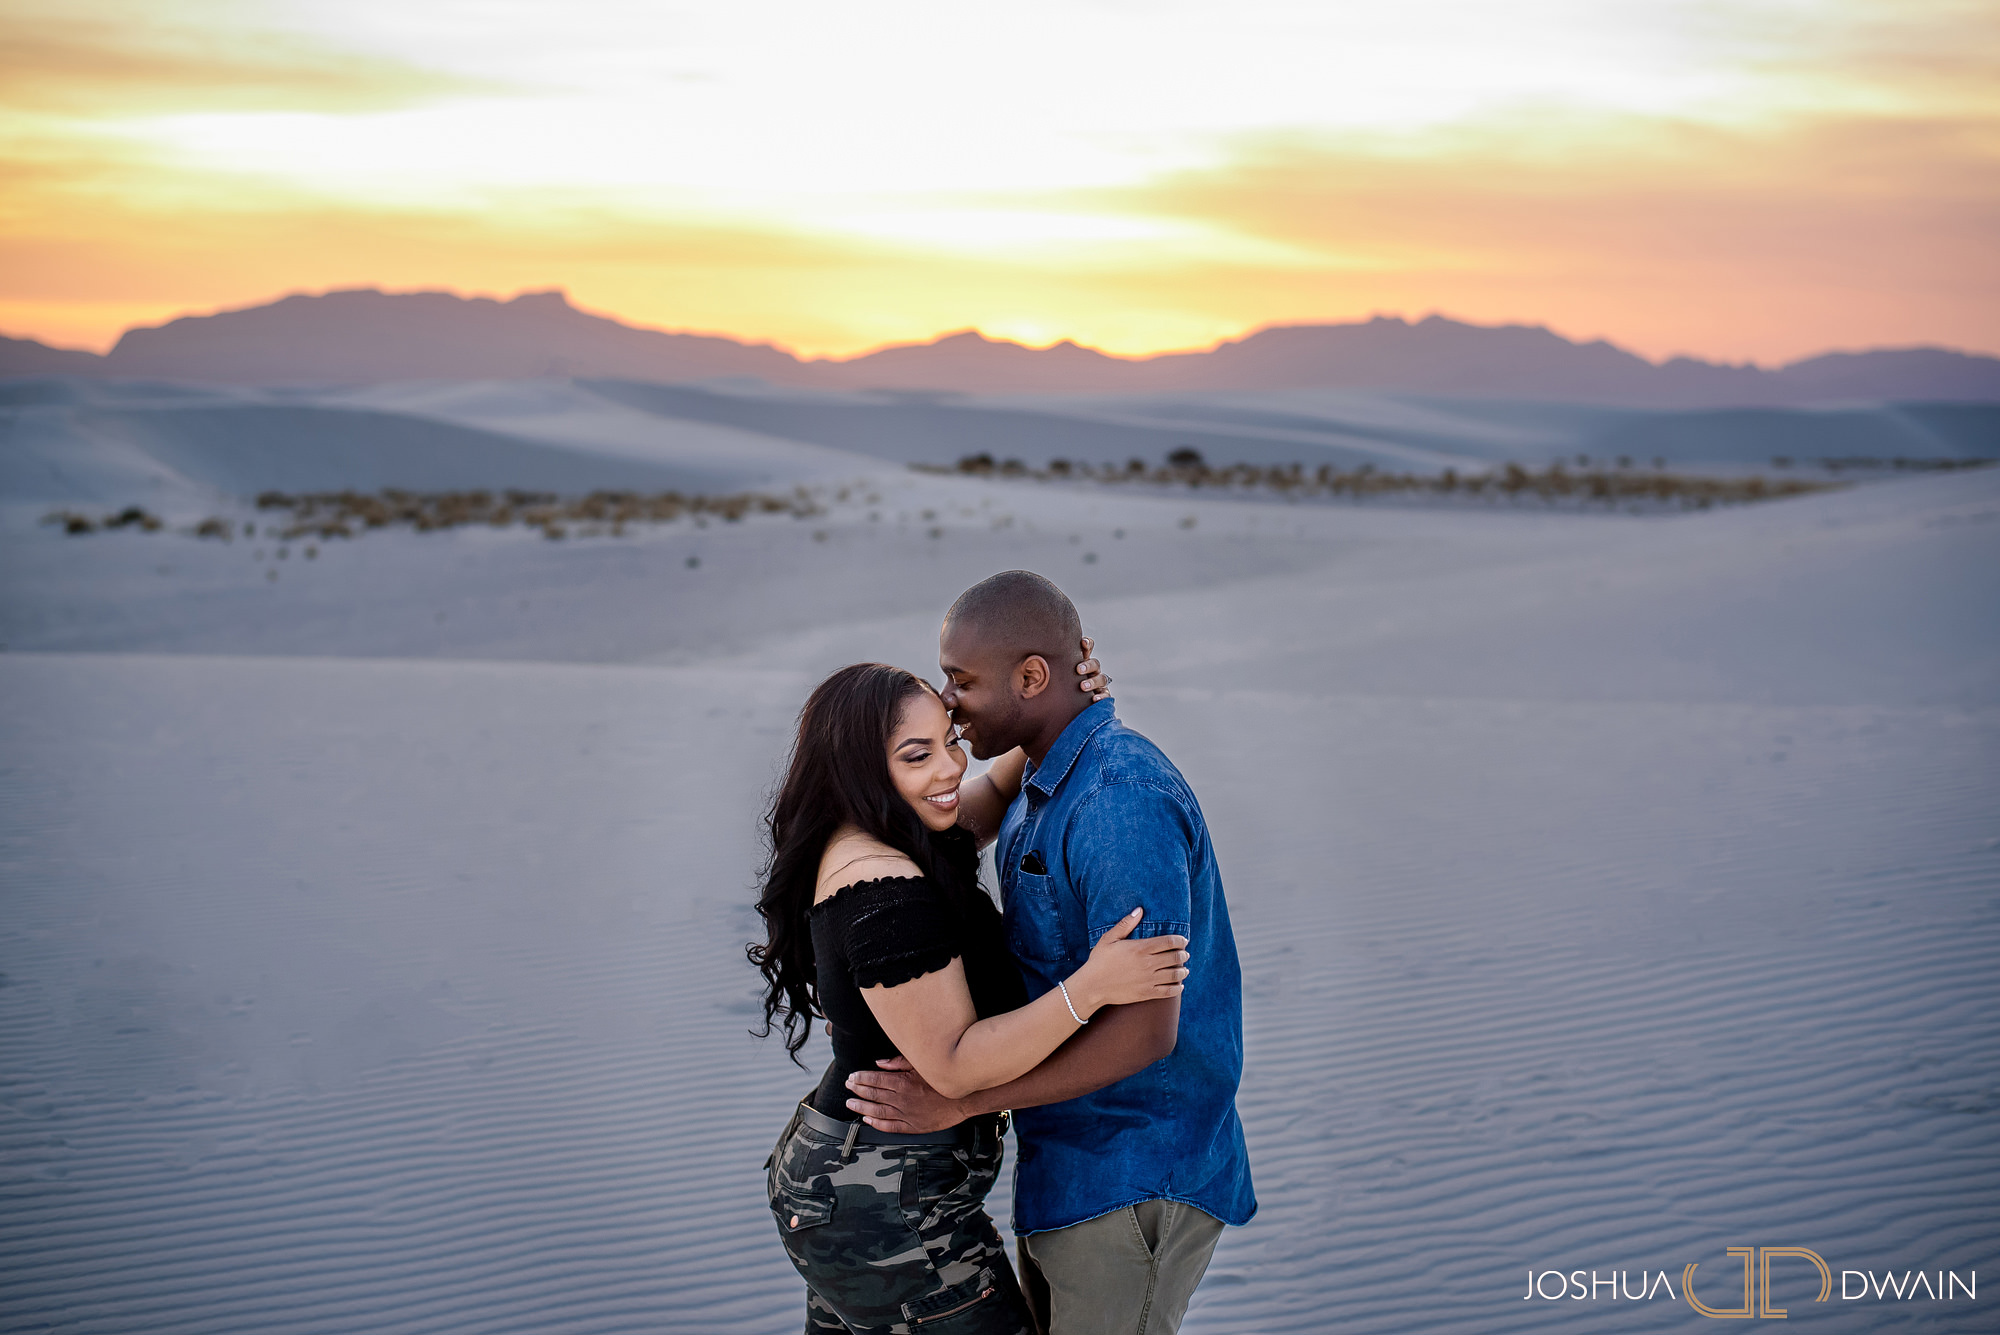 brianna-william-16-white-sands-monument-national-park-new-mexico-engagement-photographer-joshua-dwain-